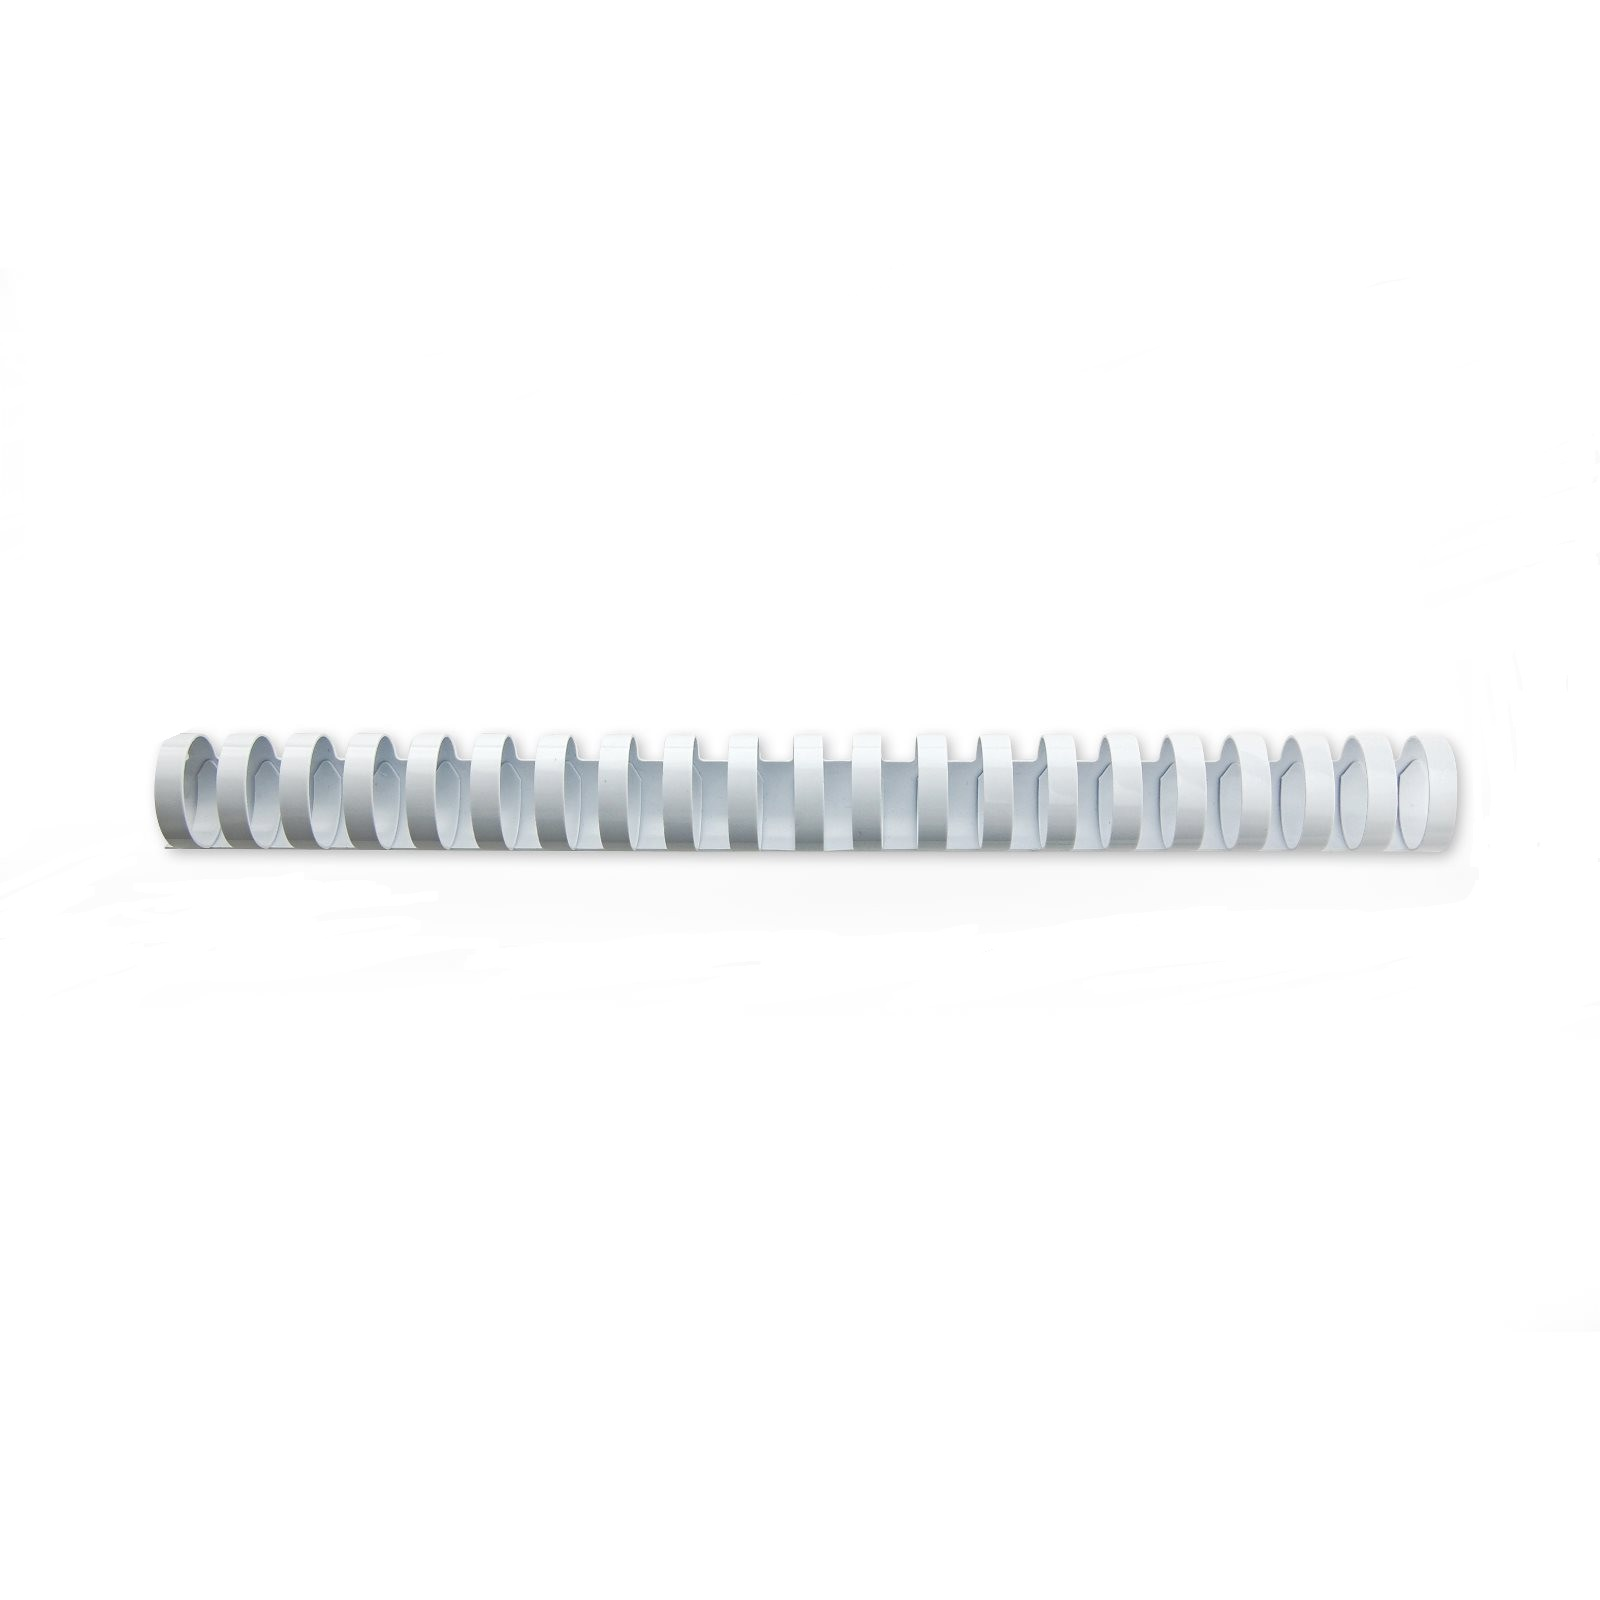 GBC Bind Combs 21 Ring A4 25mm WT PK50